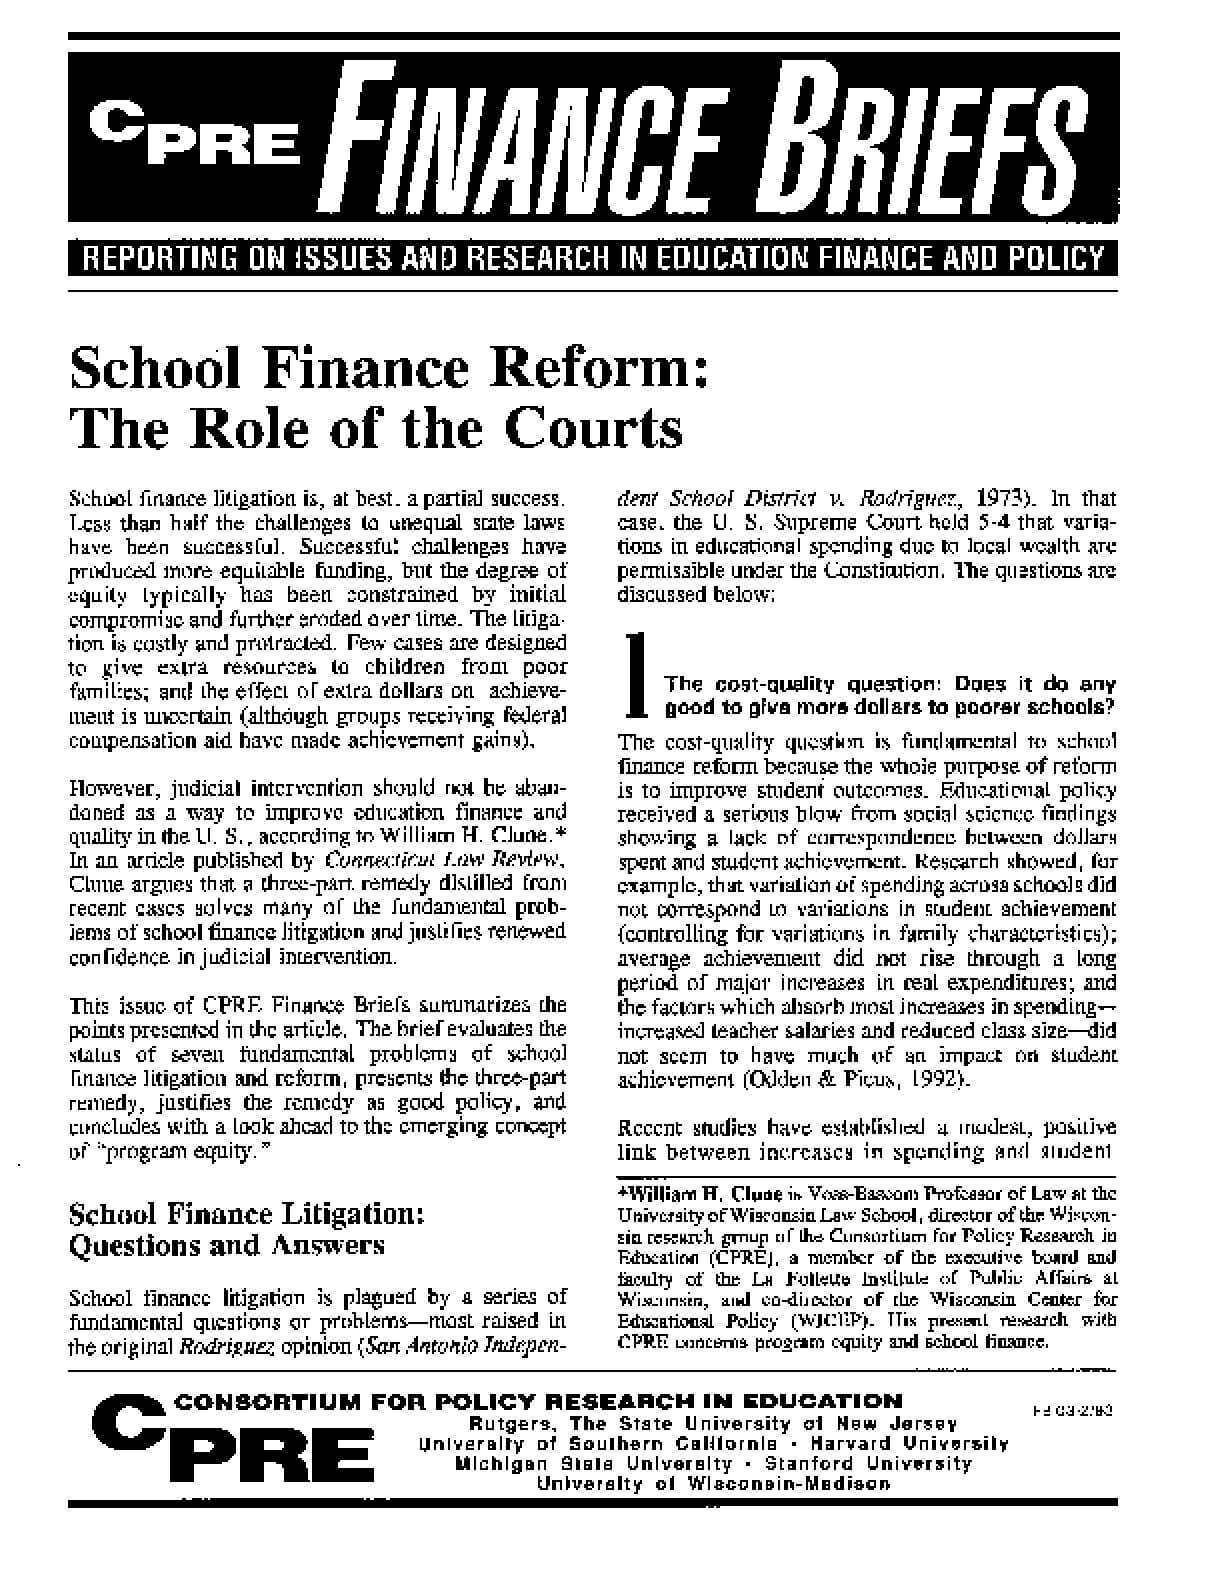 School Finance Reform: The Role of the Courts